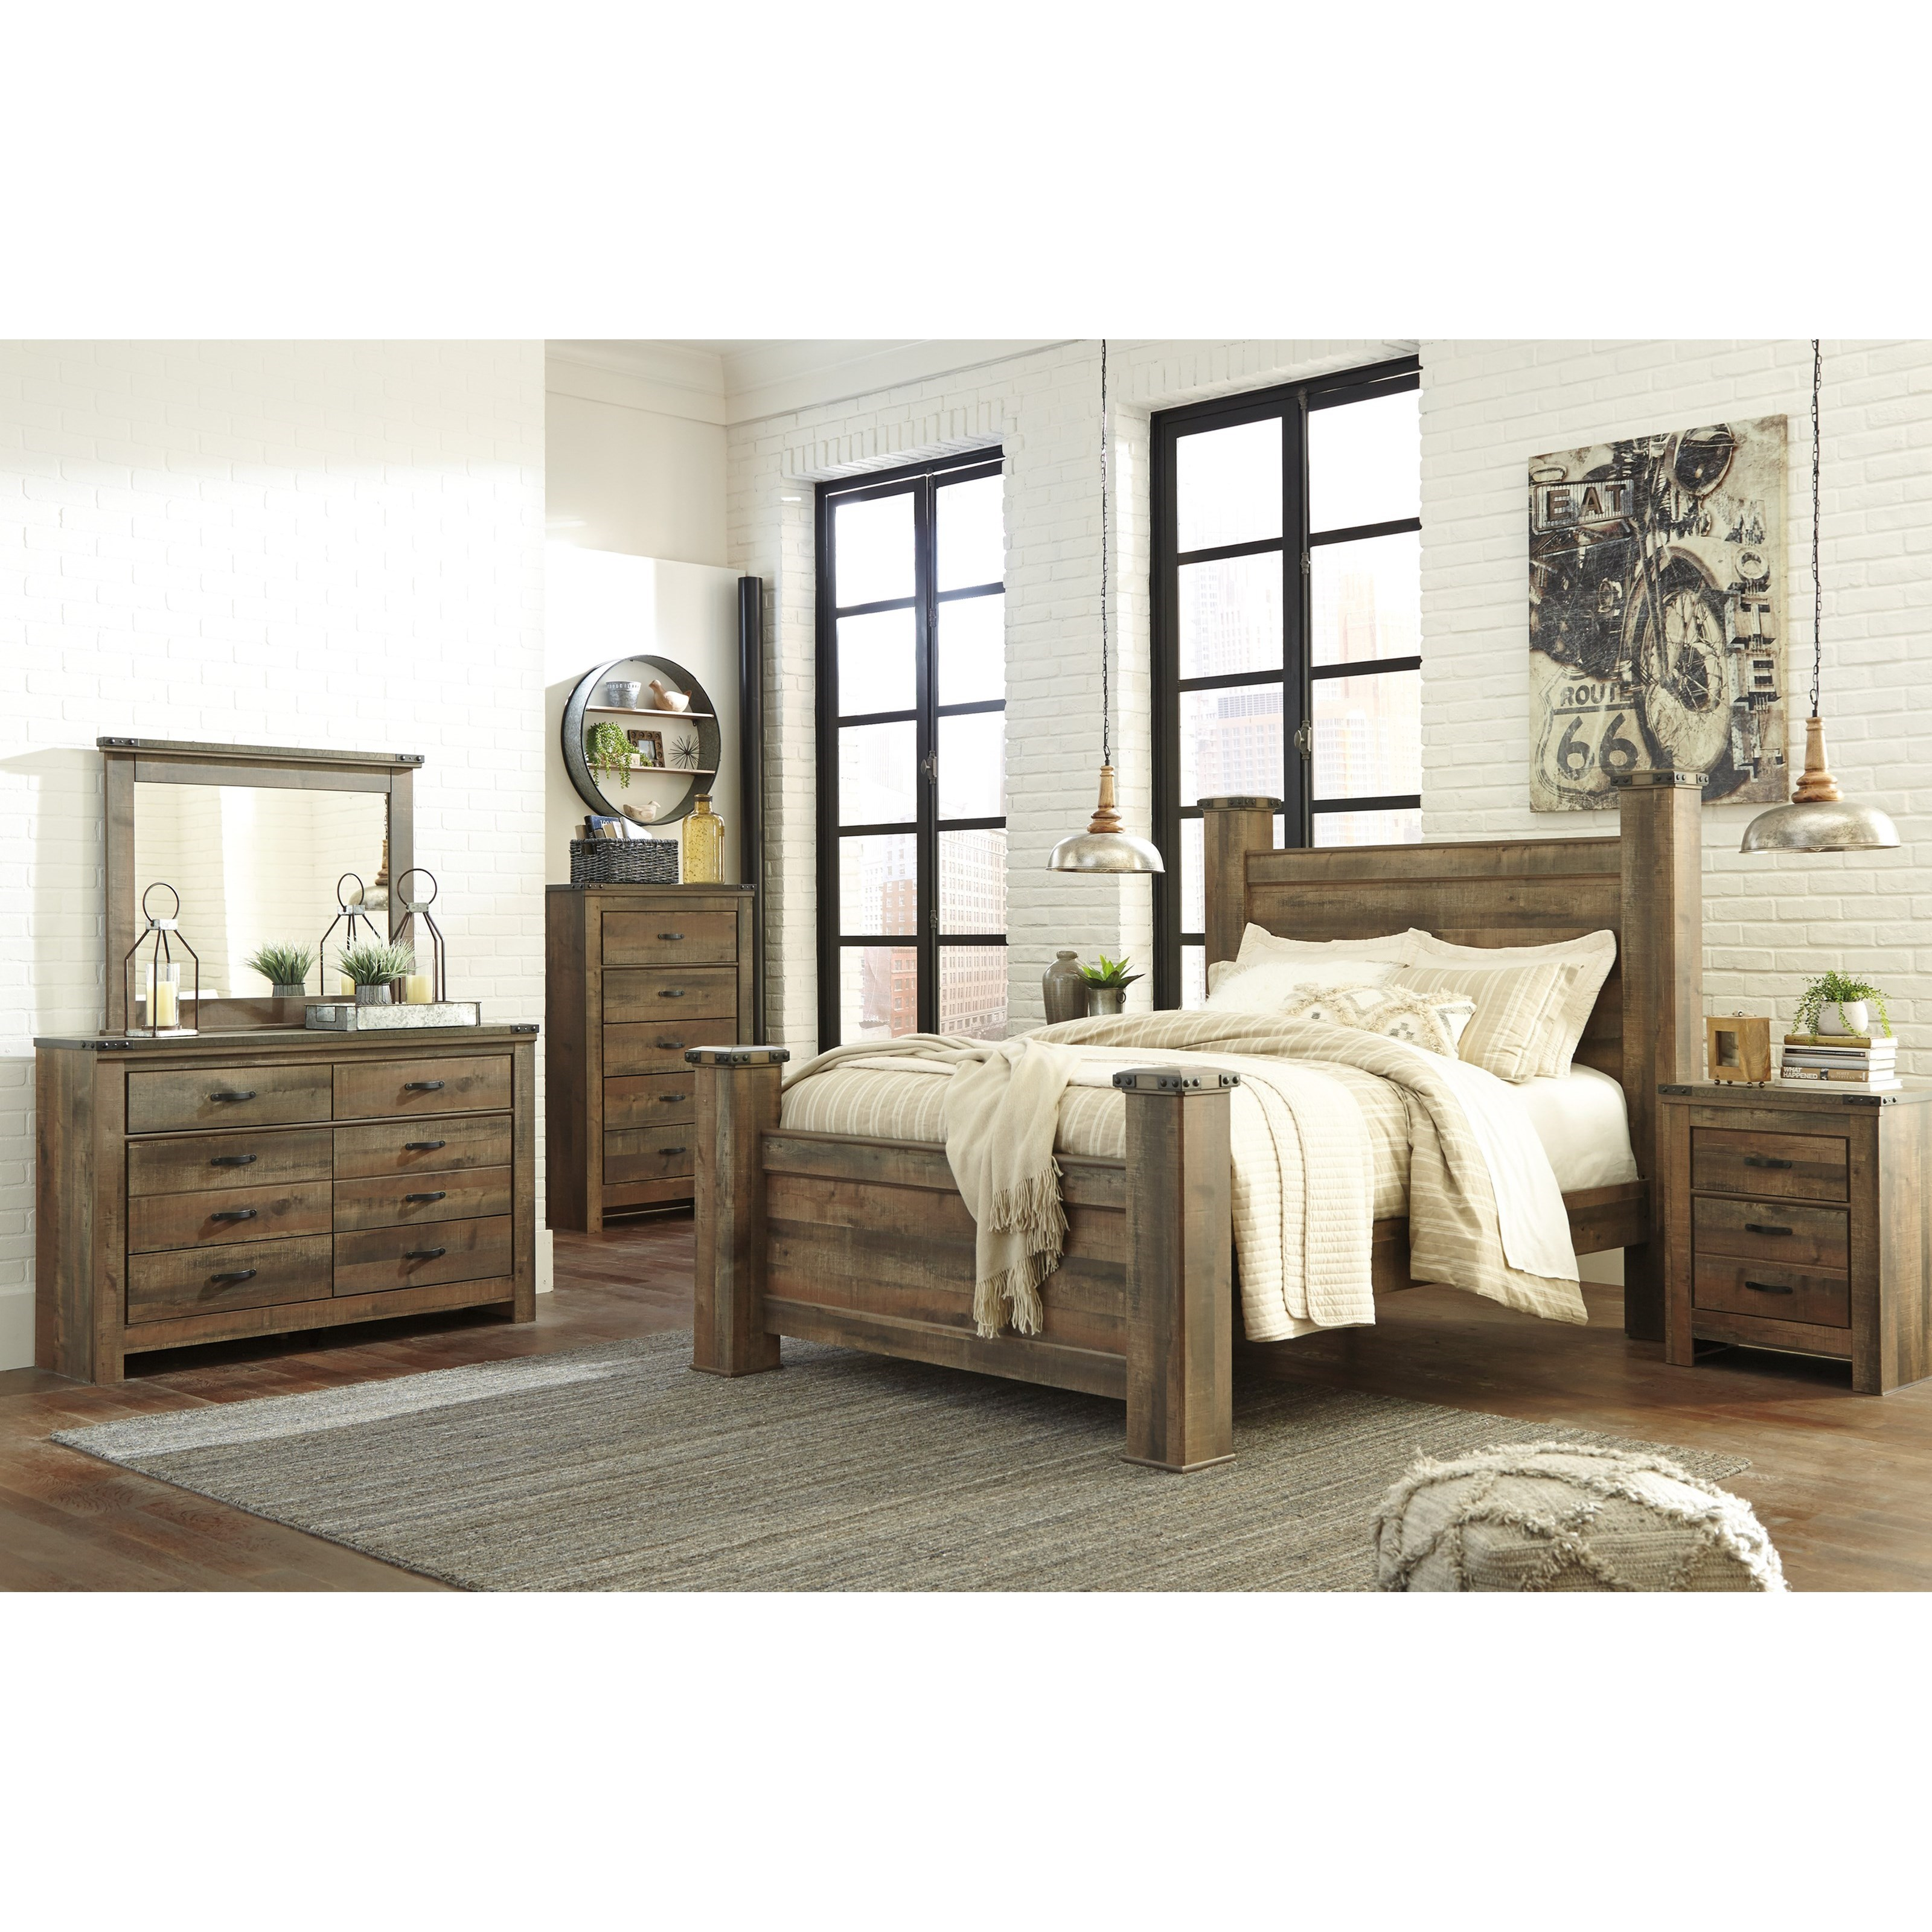 Signature Design By Ashley Trinell Rustic Look Queen